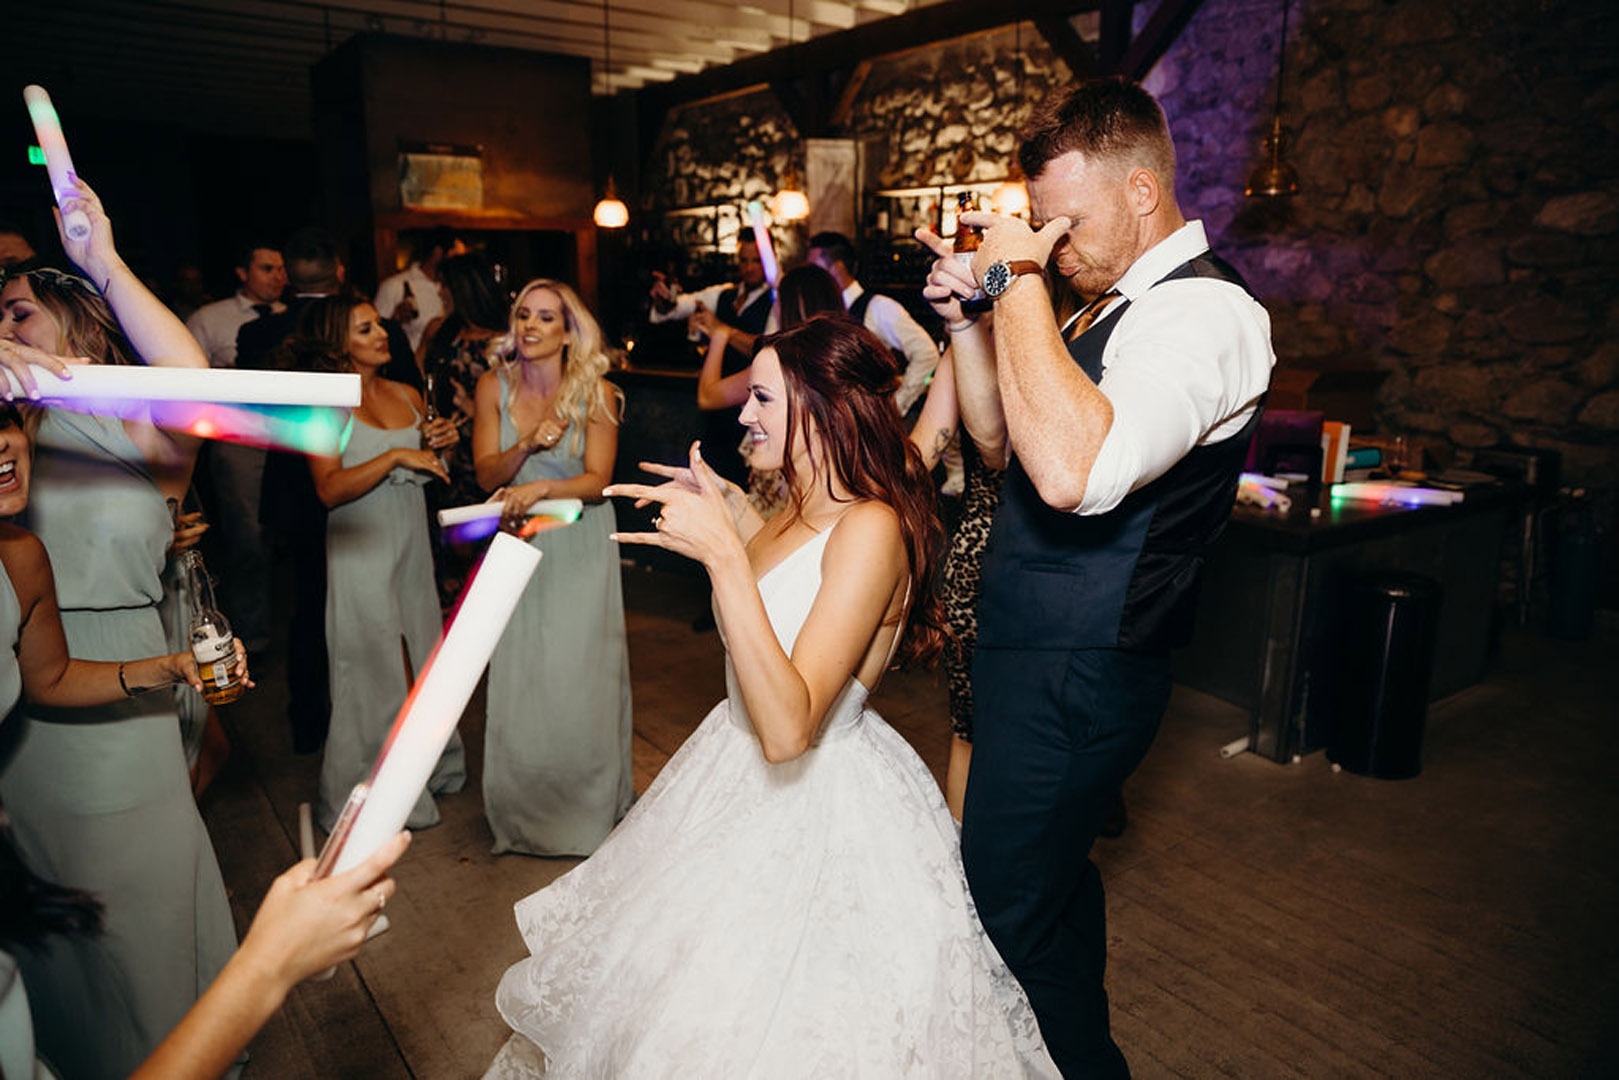 Wedding Music: DJ or Band?